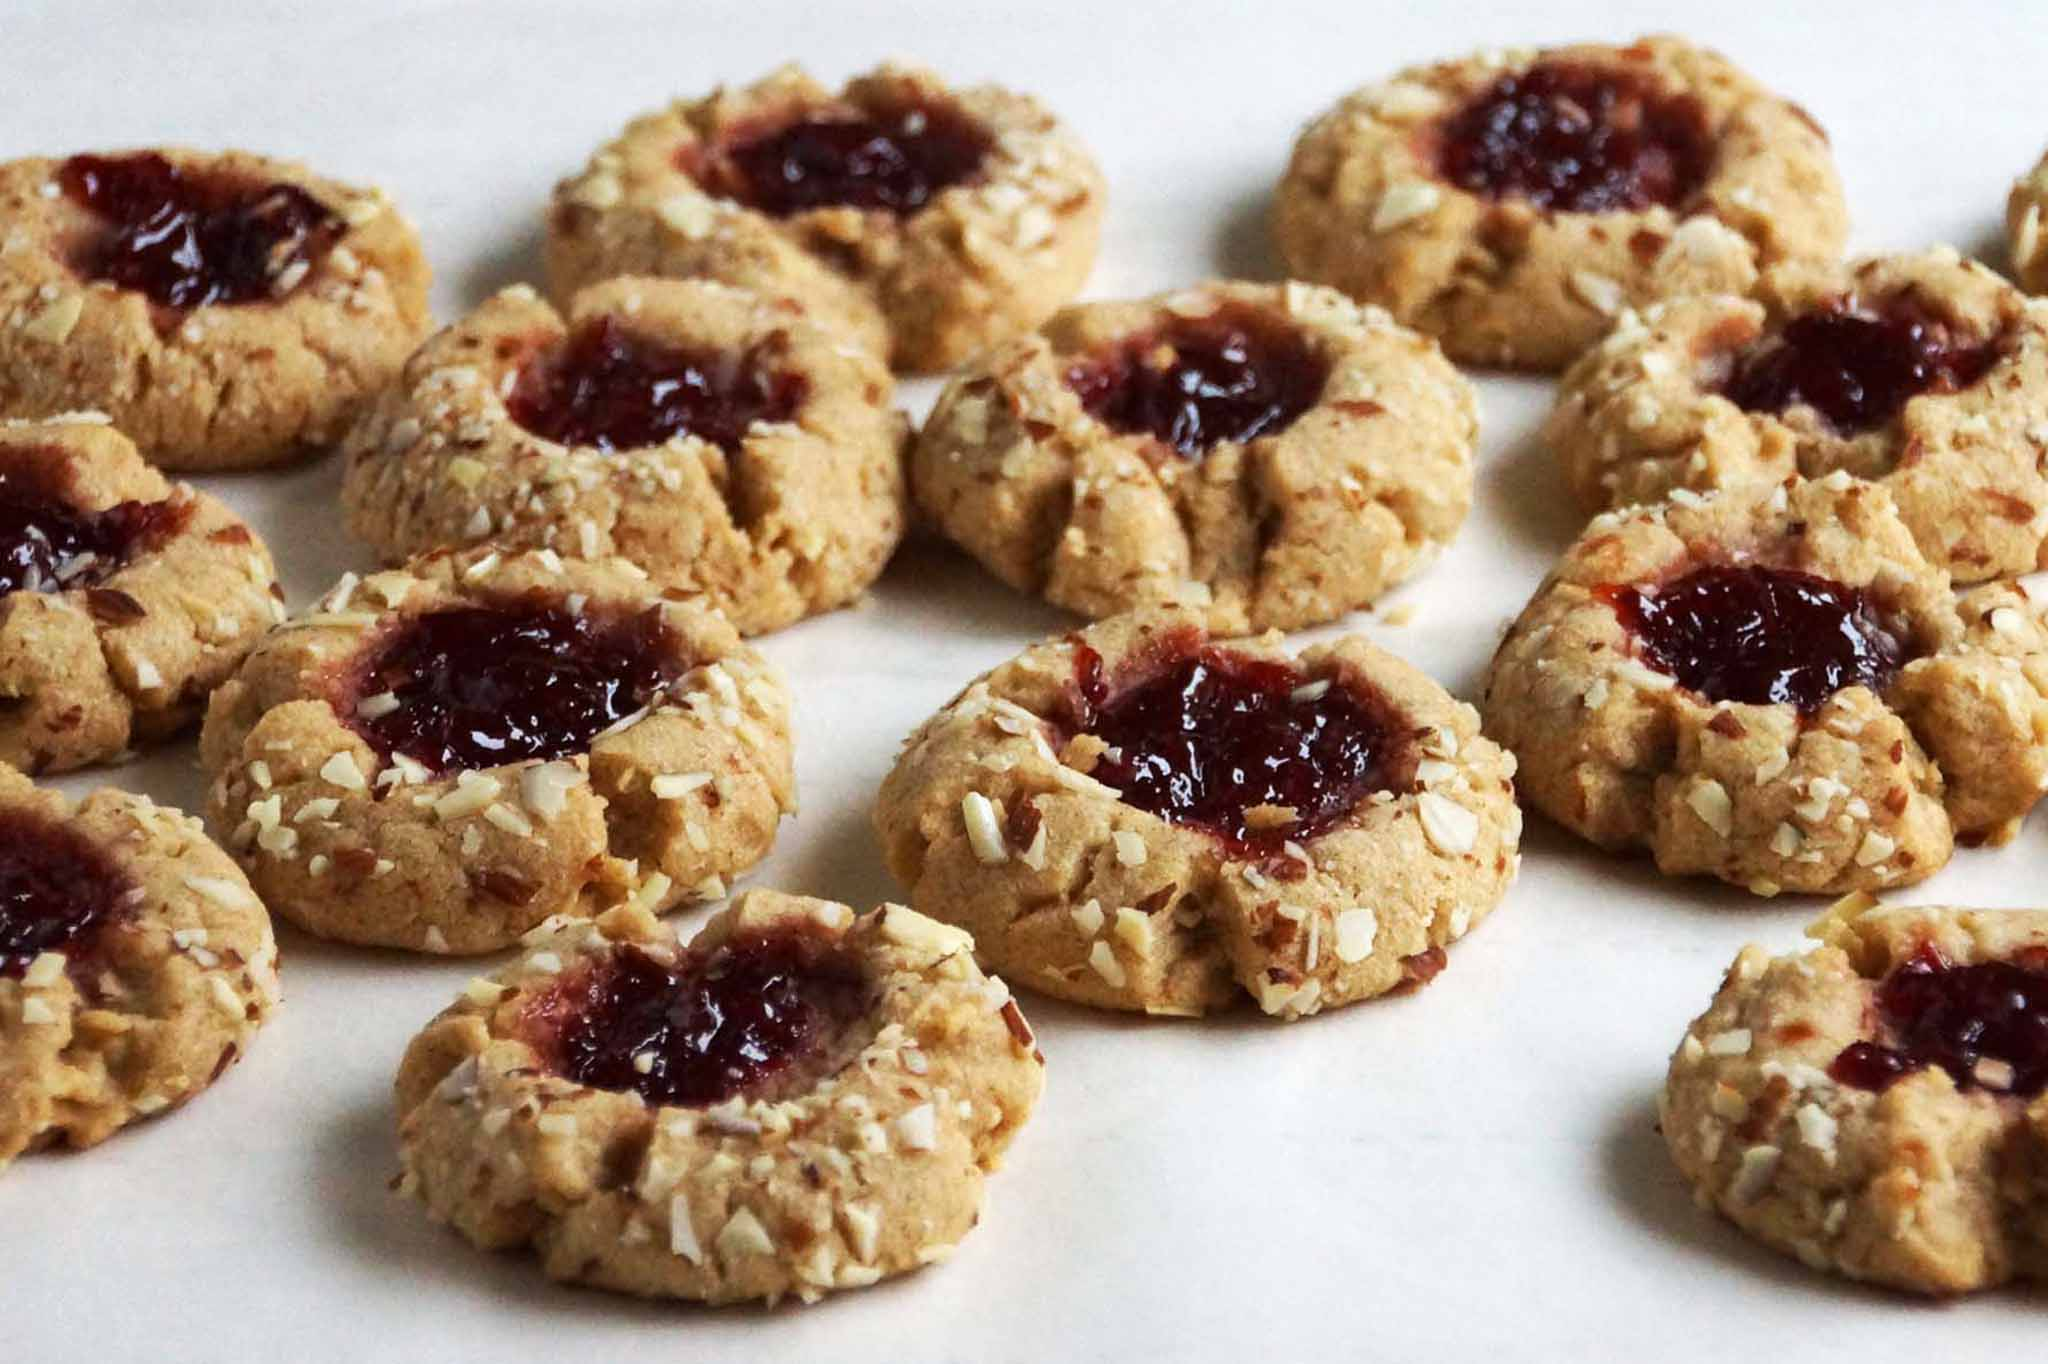 Desserts Cookies Amp Treats Bread Amp Savory Baked Goods